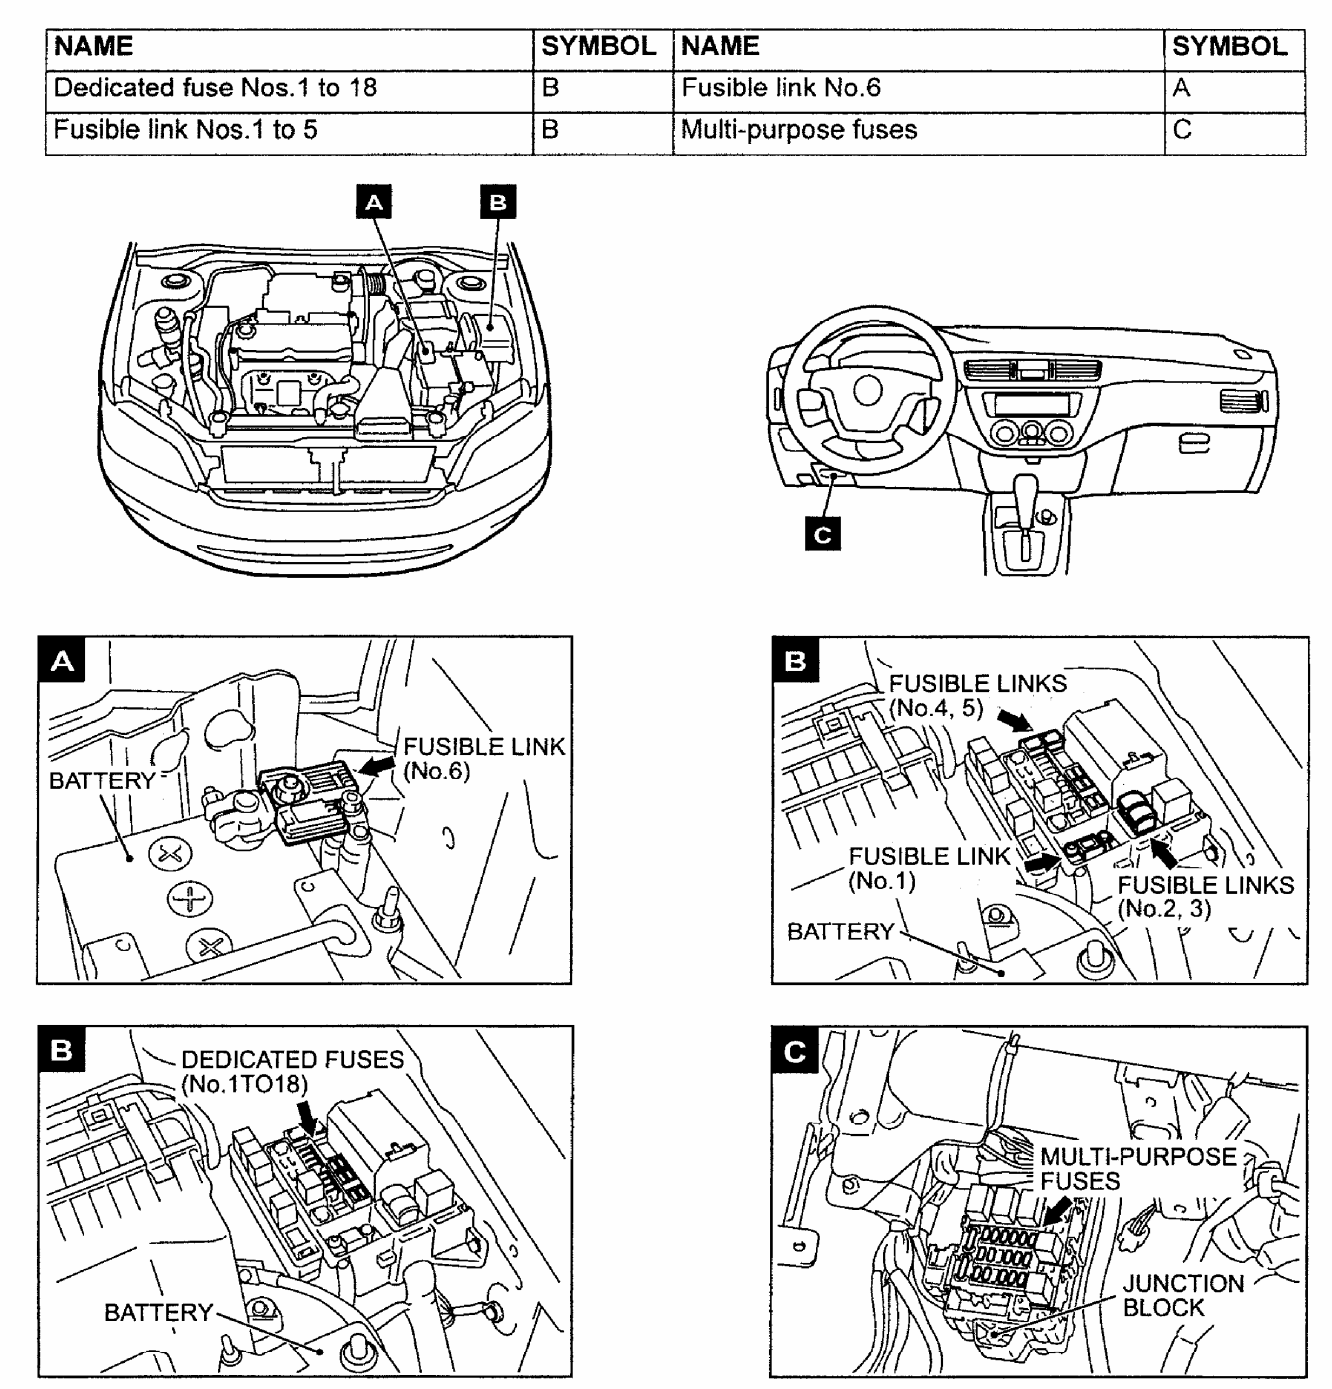 2002 Mitsubishi Montero Sport Fuse Box Diagram Archive Of Ul 2003 Lancer Data Wiring Schema Rh Site De Joueurs Com